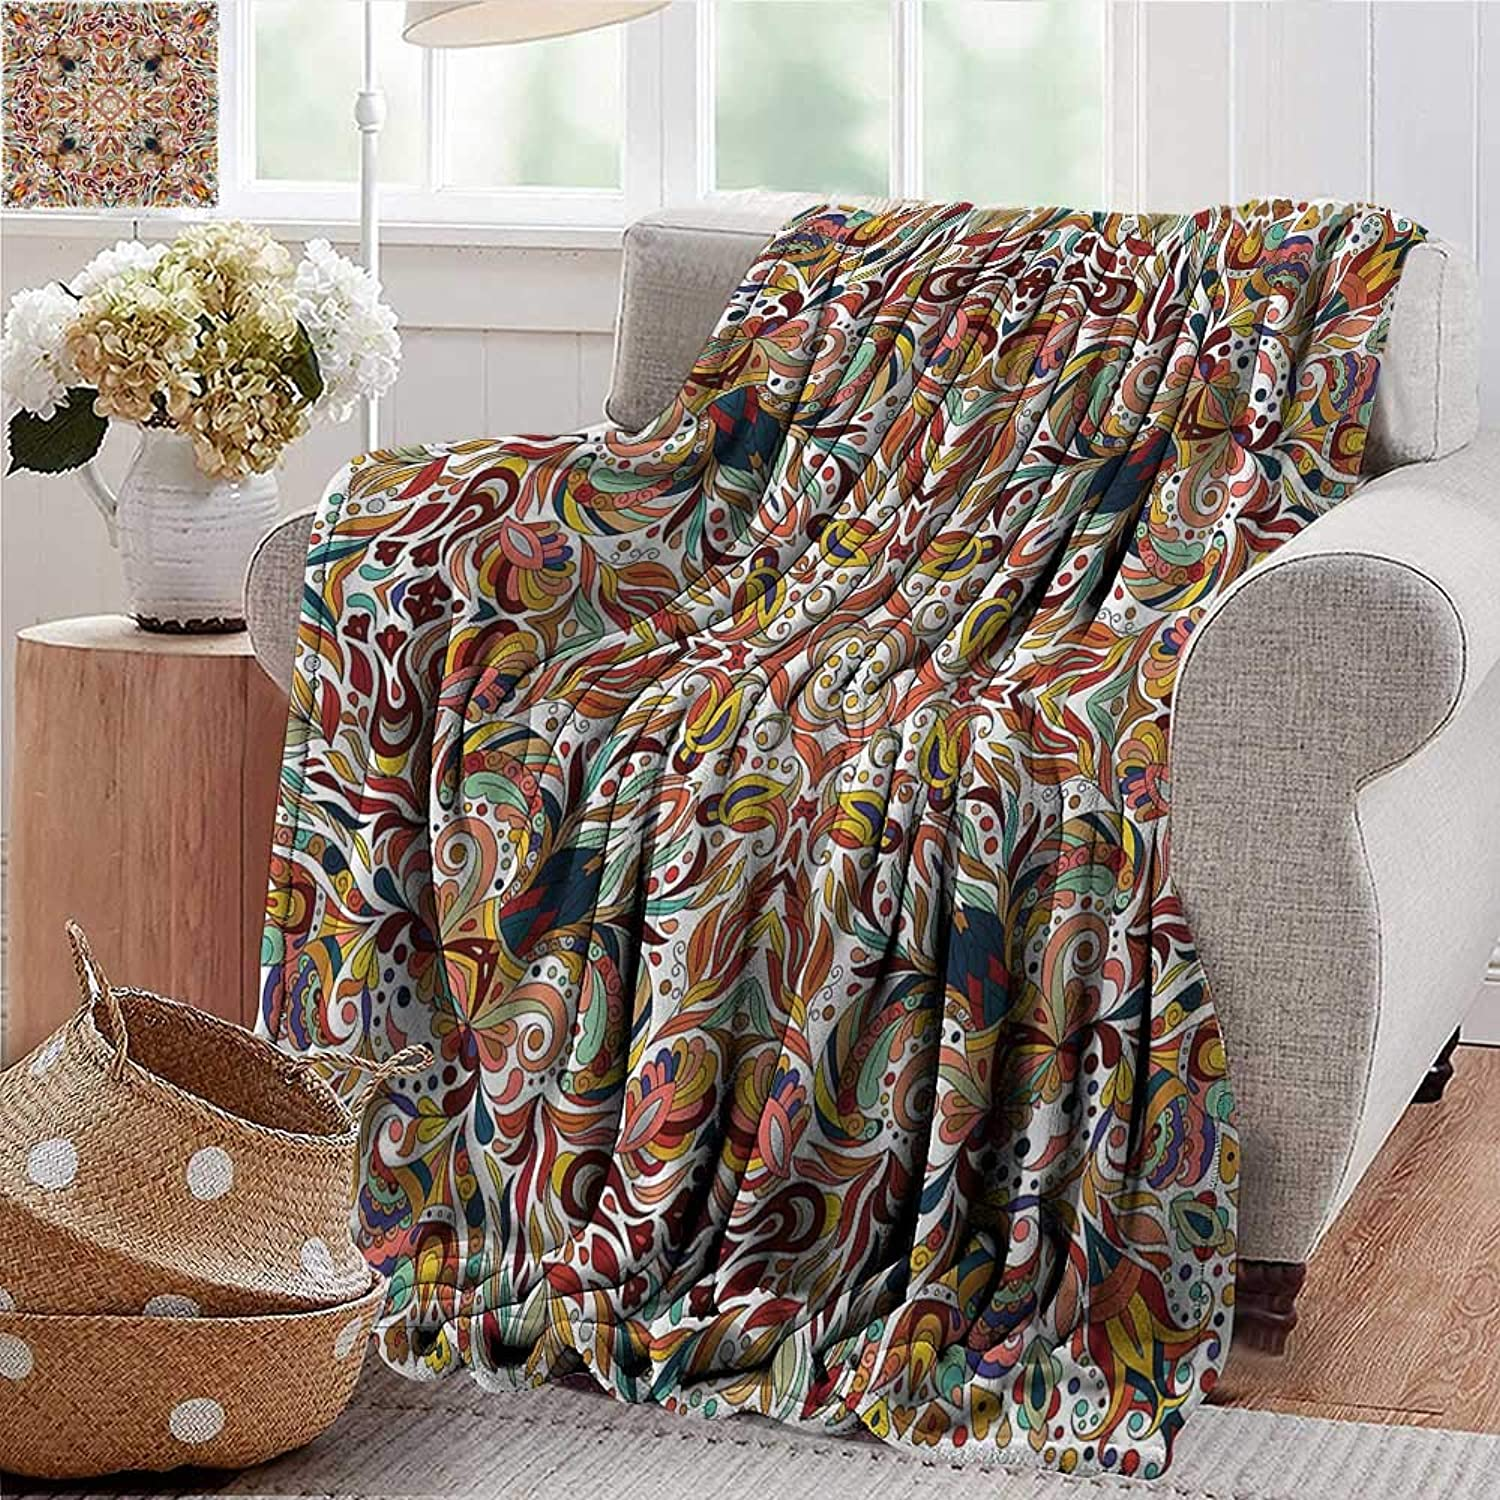 Xaviera Doherty Weighted Blanket for Kids Batik,Middle Eastern Bouquet Soft Summer Cooling Lightweight Bed Blanket 50 x60